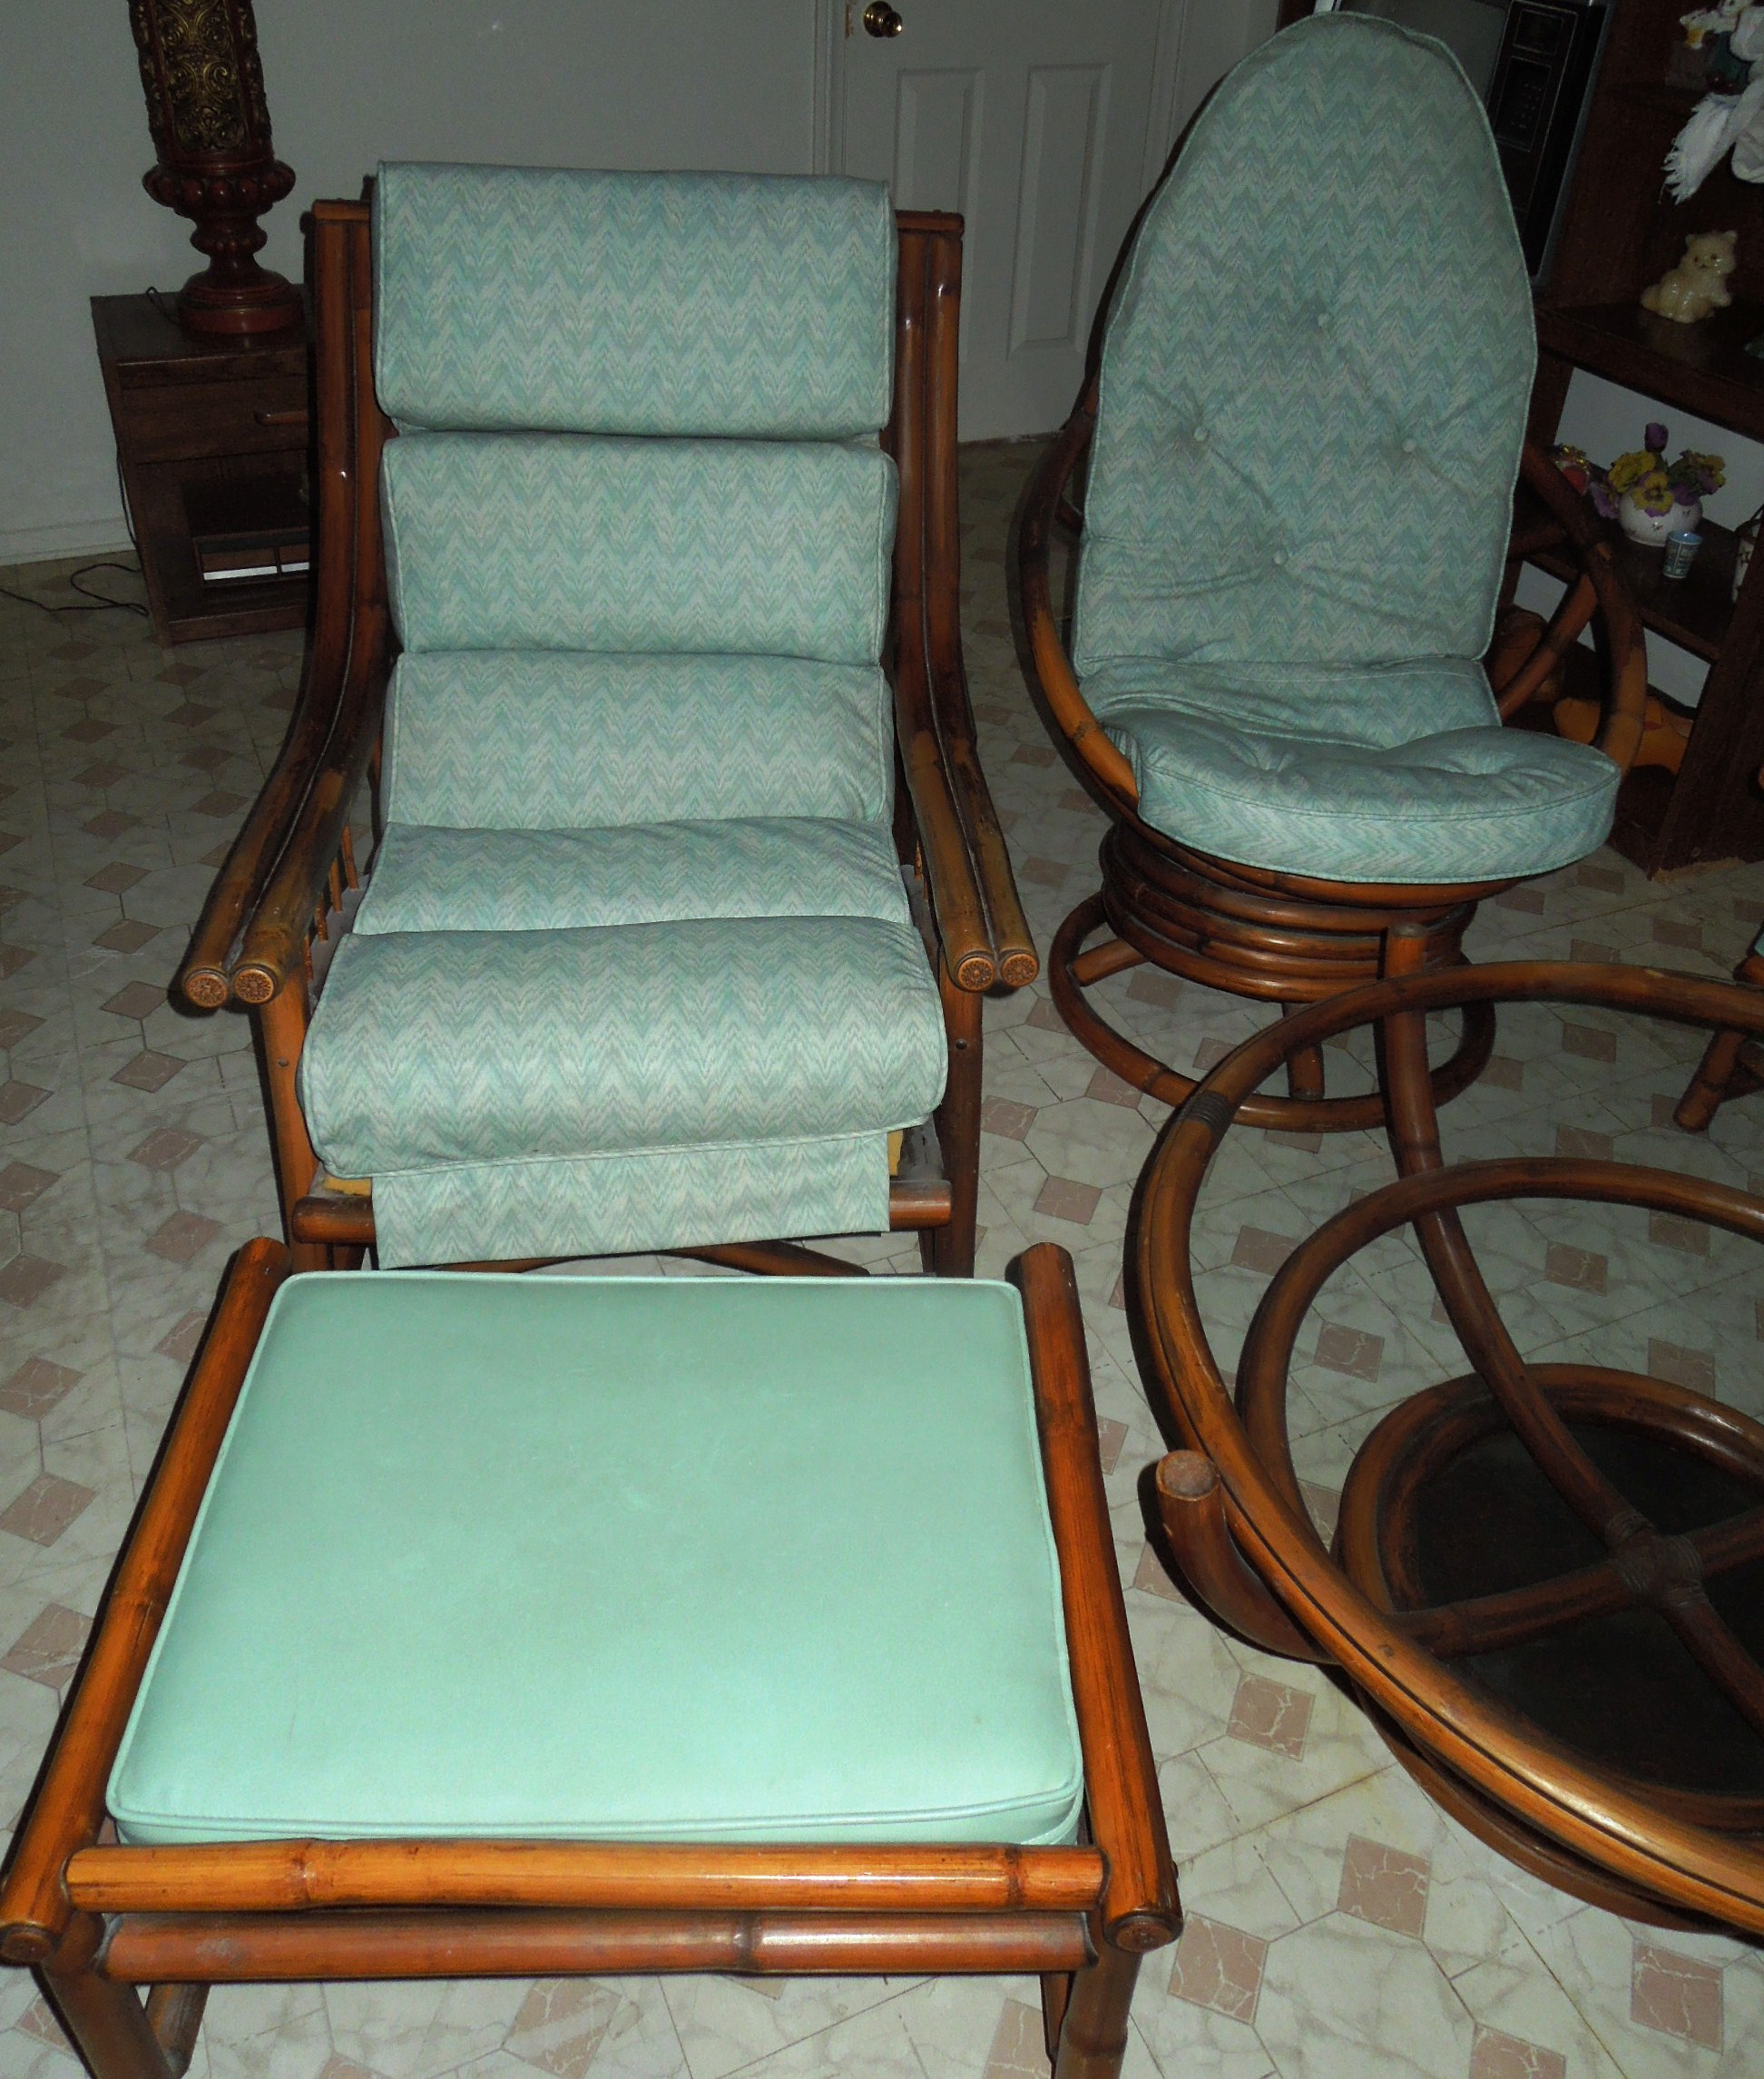 1960s Vintage Bamboo Vinyl Retro Living Room Furniture Set For